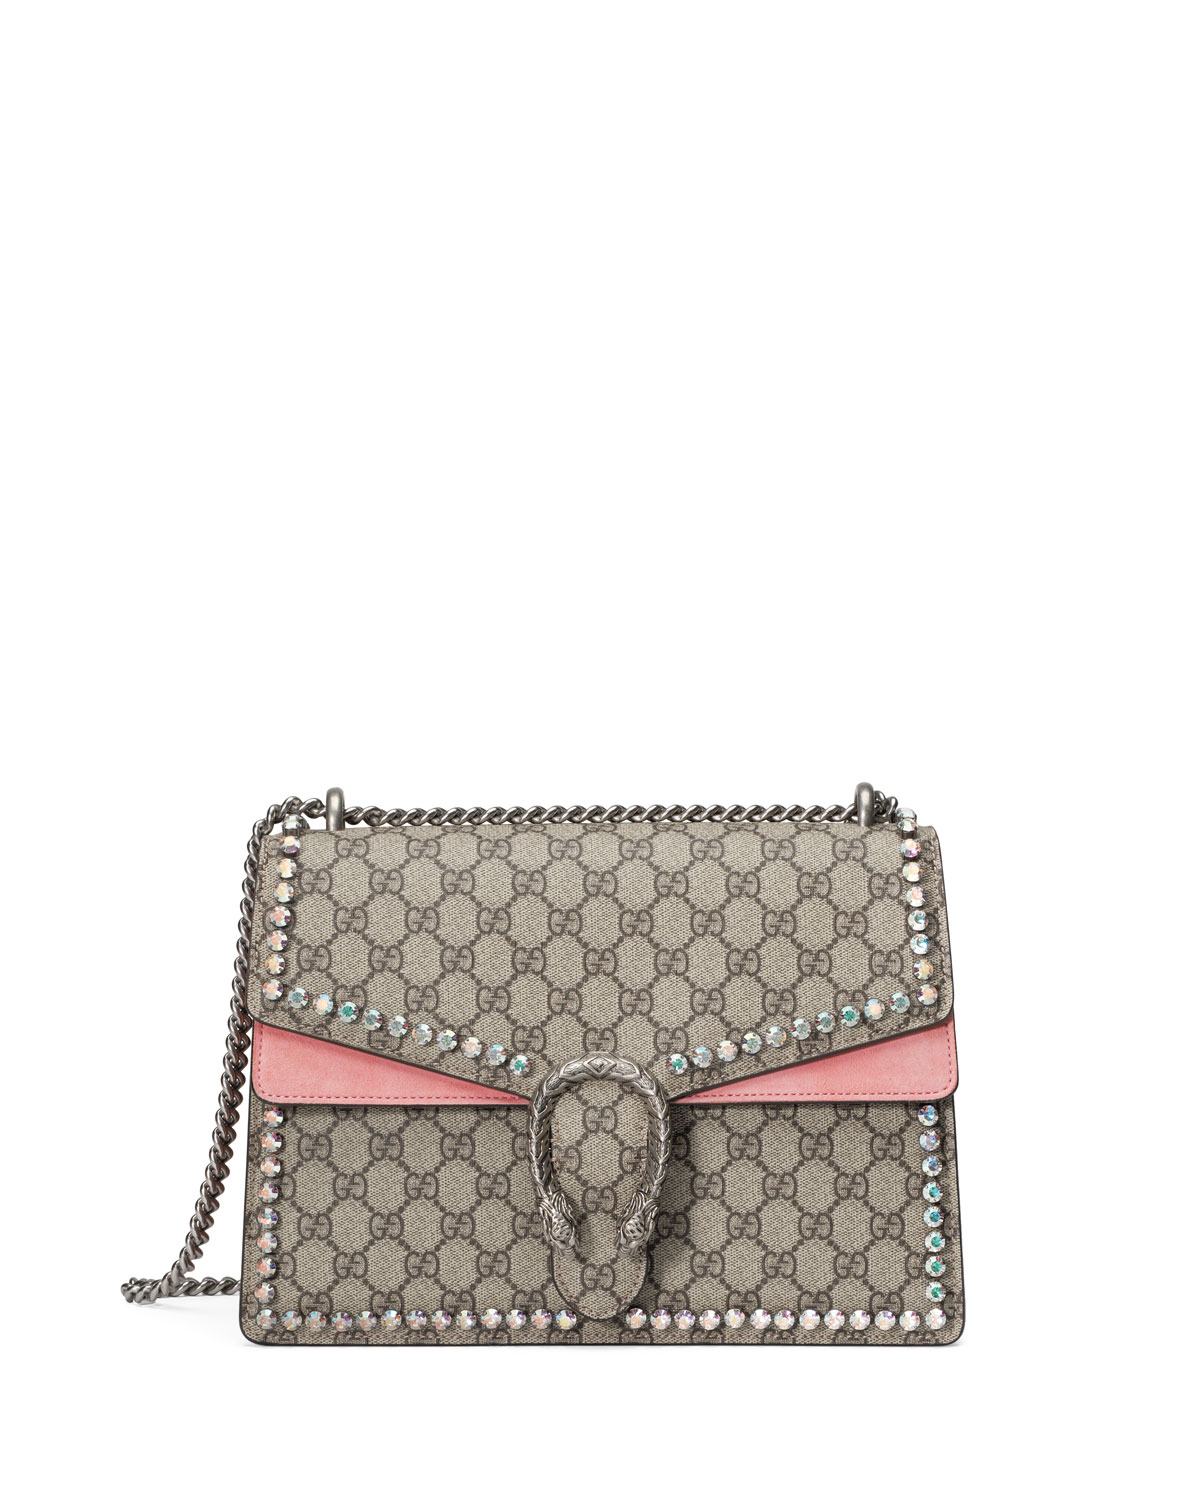 cd68965a4e6 Gucci Dionysus GG Canvas Chain Shoulder Bag with Crystals